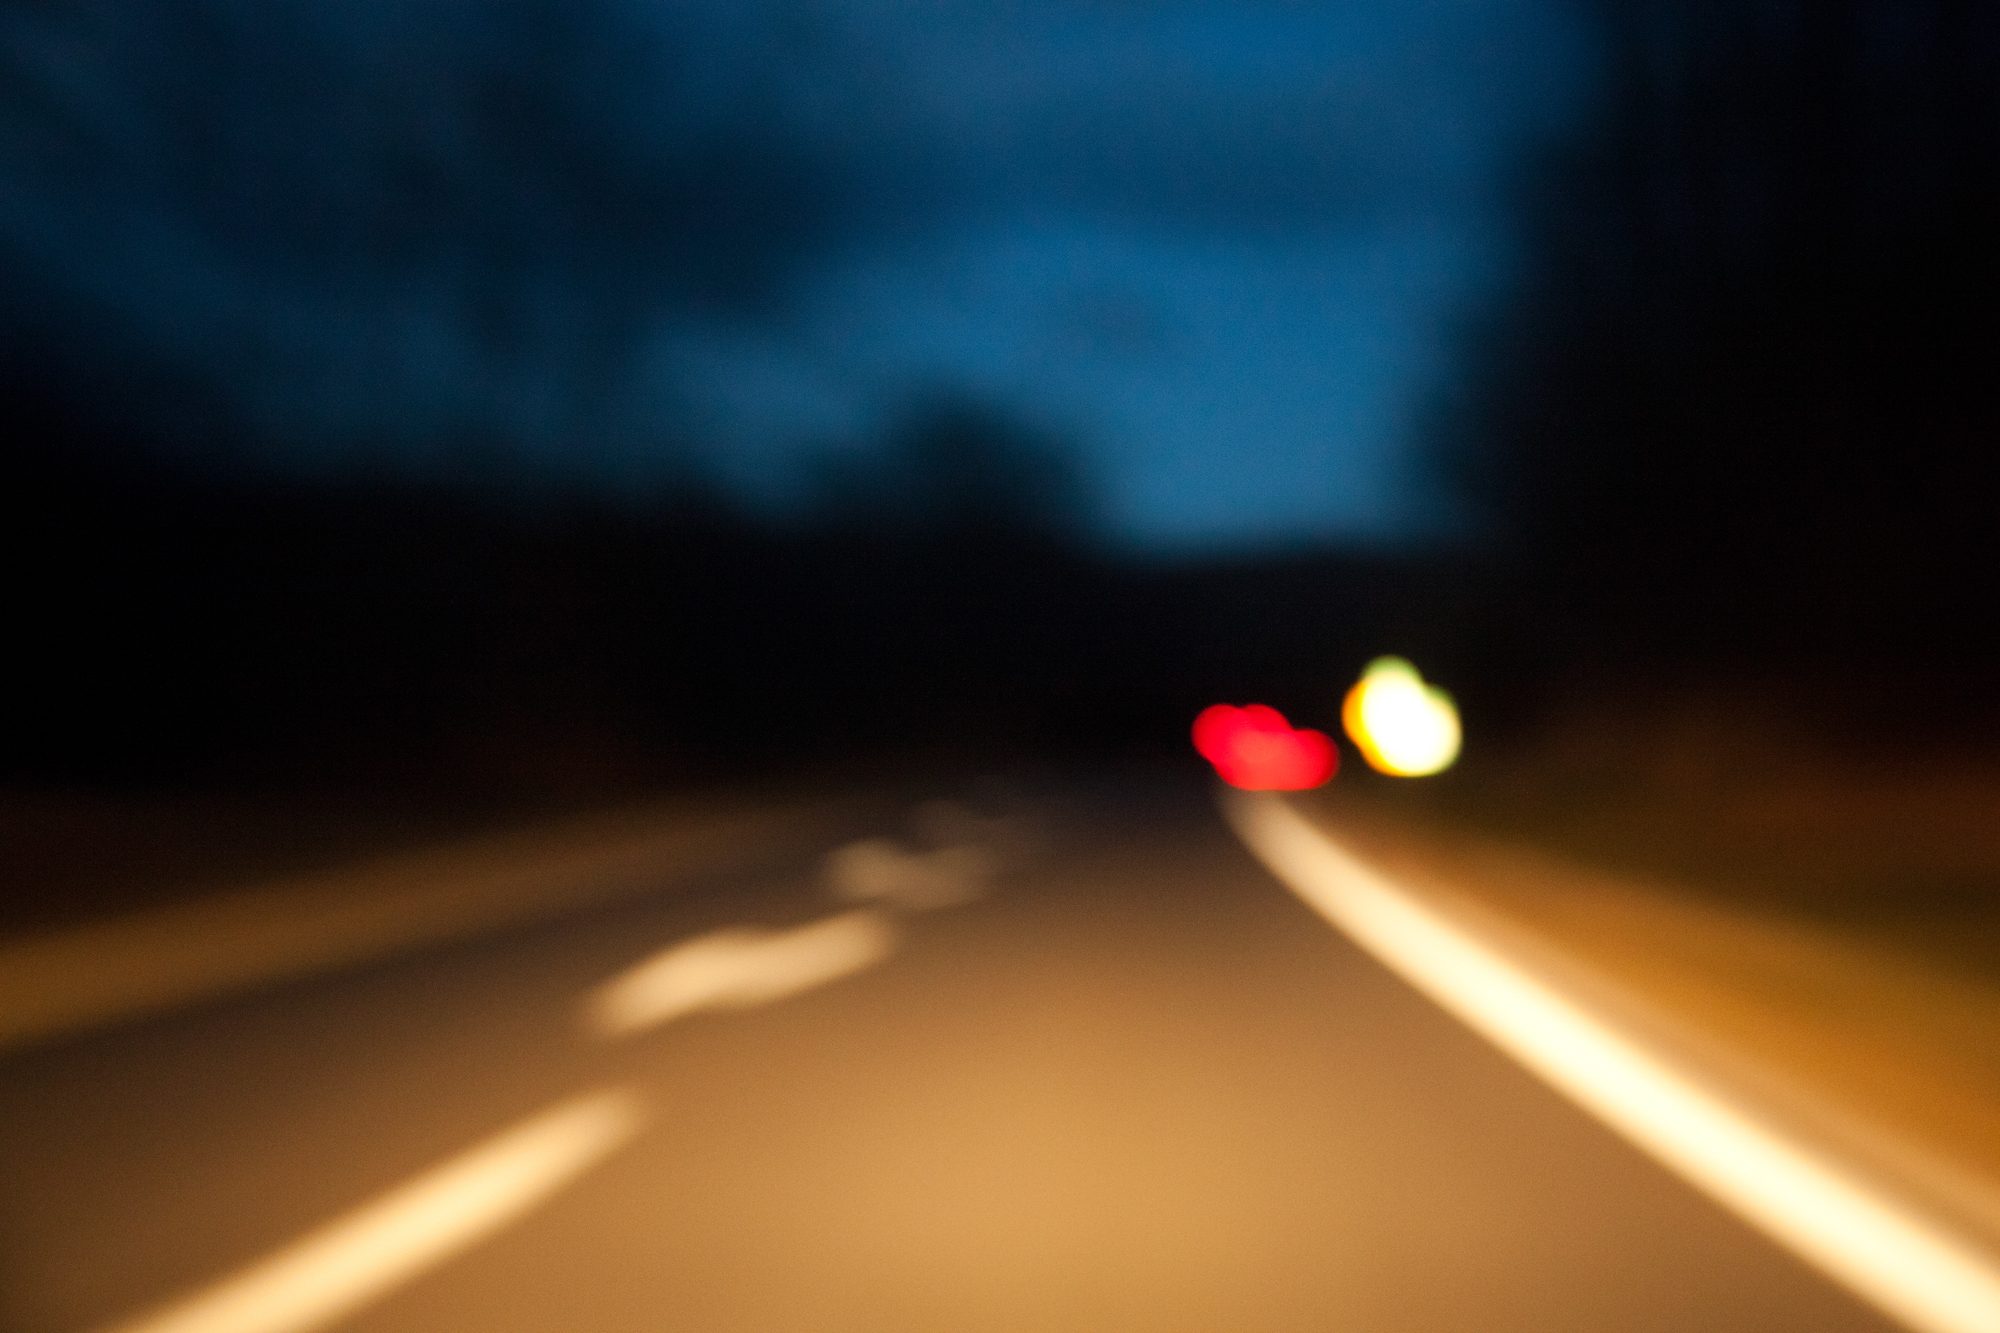 Taconic State Parkway, NY 2014 - Kate Sterlin